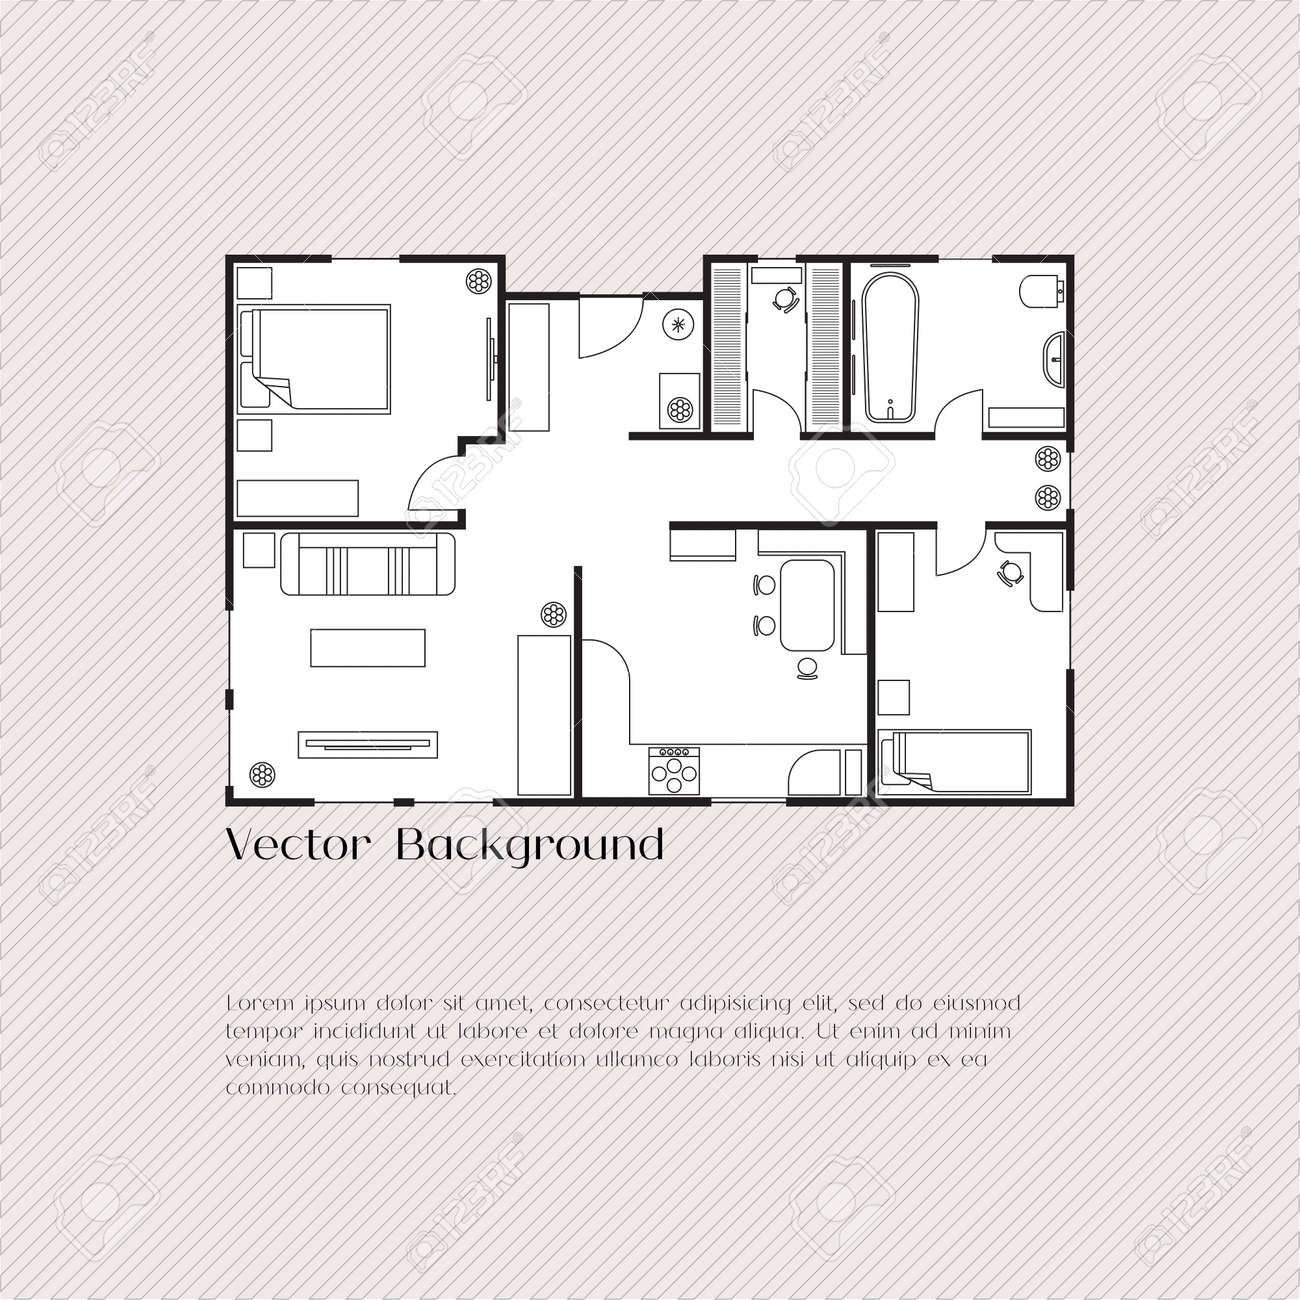 House plan background for card, banner, presentation template,.. on wireless house floor plan, telephone house floor plan, display house floor plan, india house floor plan, hoke house floor plan, paper house floor plan, green house floor plan, tv house floor plan, anime house floor plan, historic victorian house floor plan, little couple house floor plan, envelope house floor plan, cool house floor plan, victorian doll house floor plan,